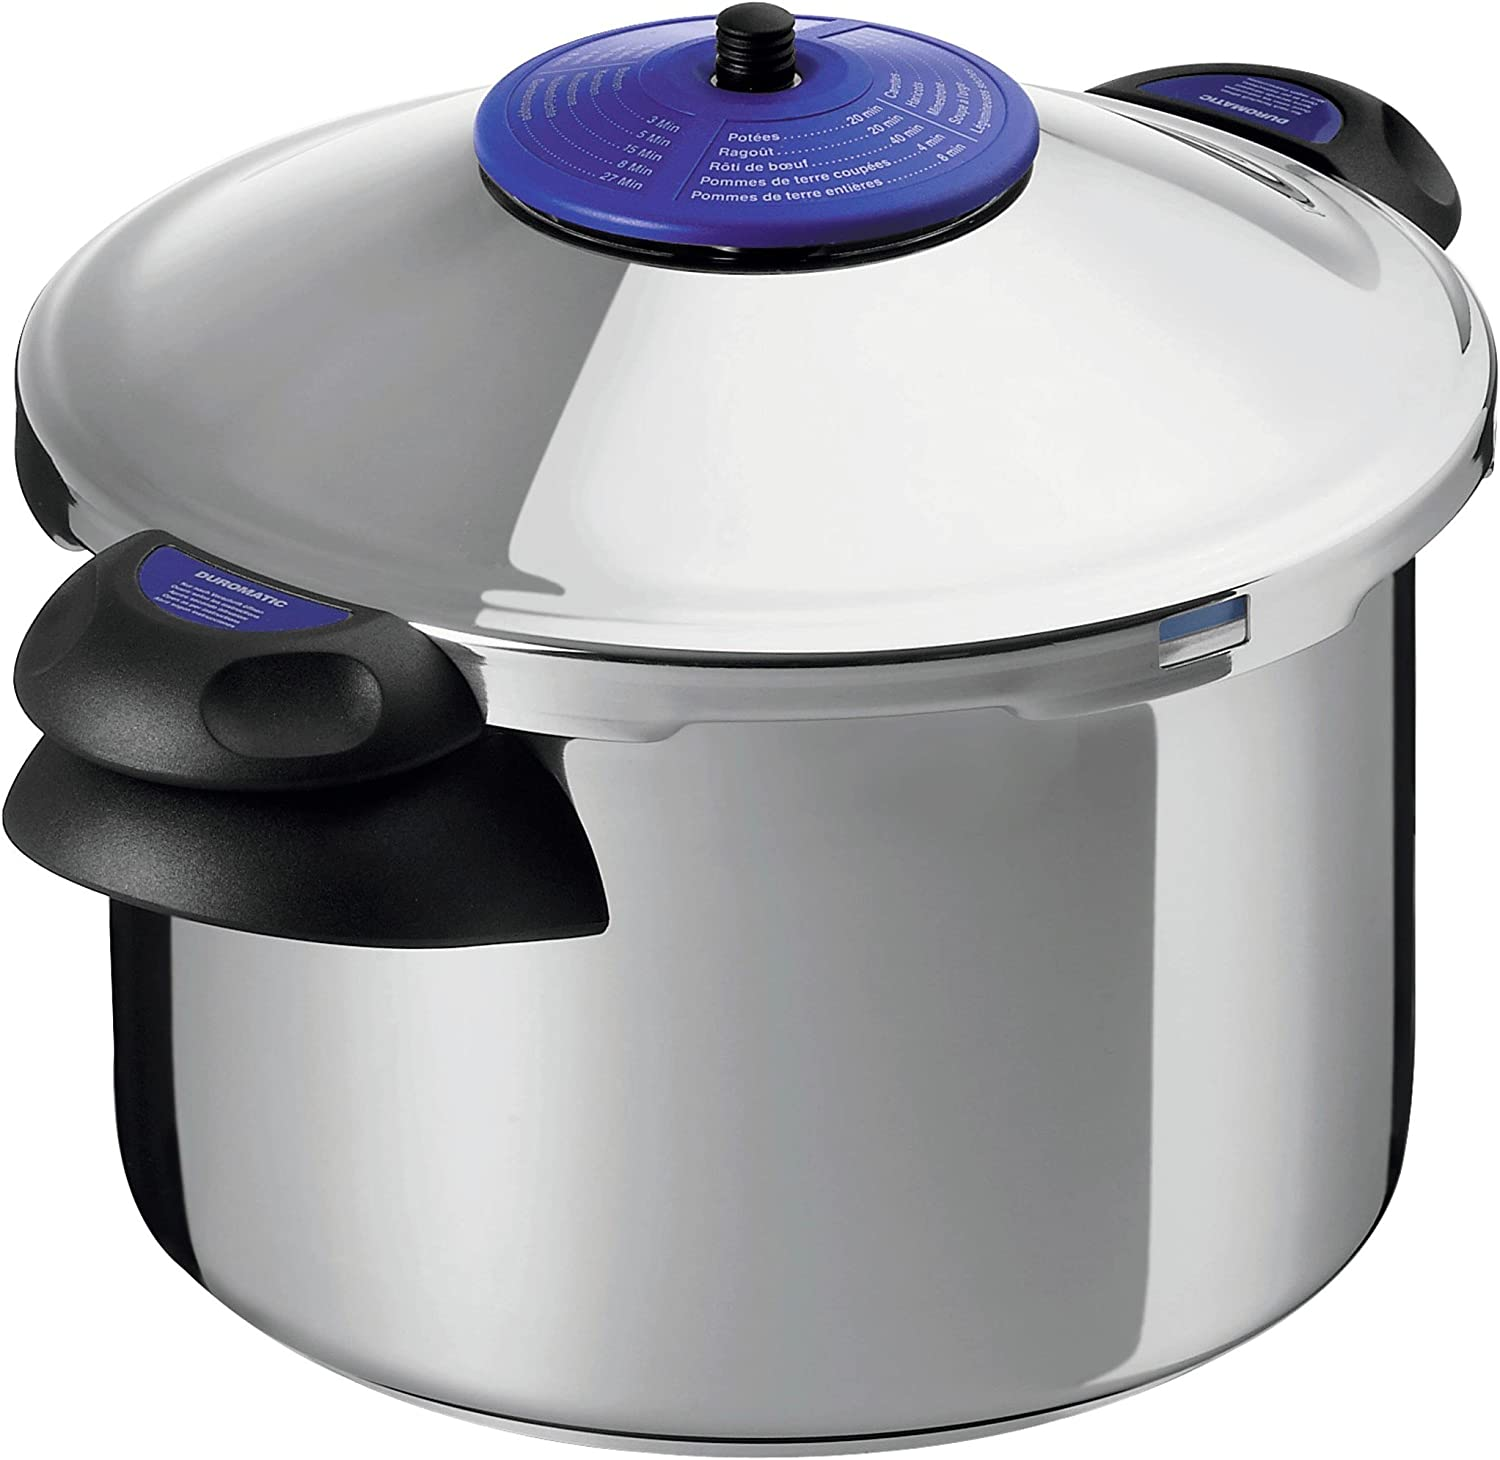 Kuhn Rikon Duromatic Supreme Stainless Steel Pressure Cooker with Side Grips, 6 Litre / 22 cm